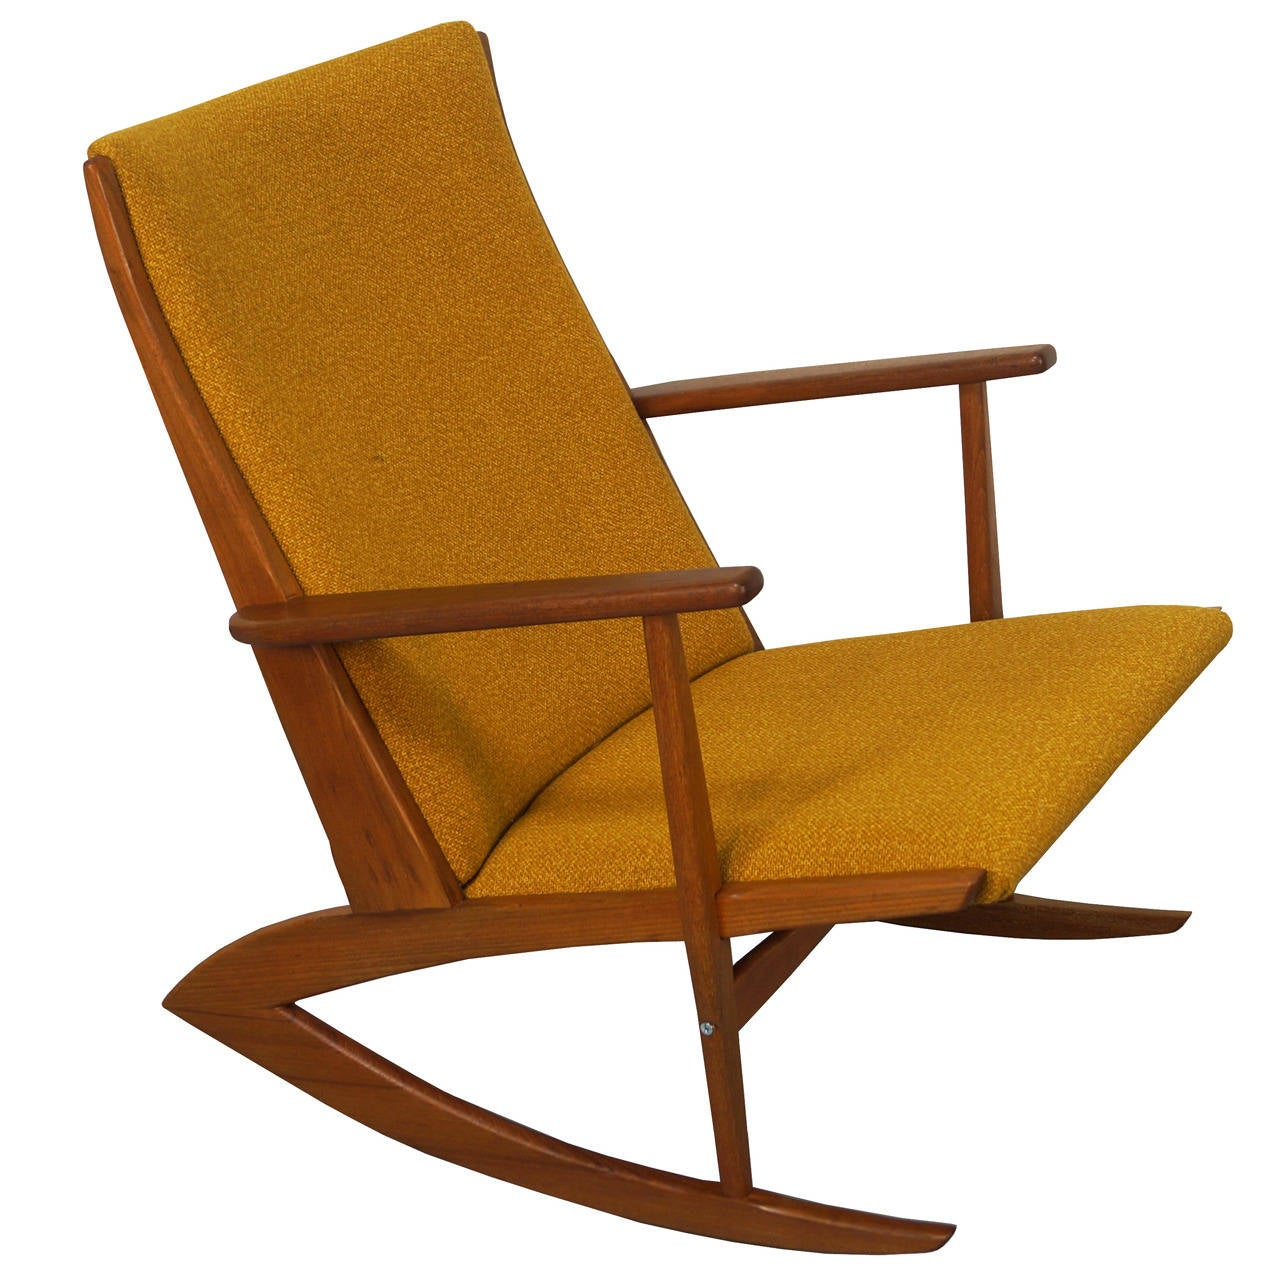 danish teak boomerang rocking chair by georg jensen at 1stdibs. Black Bedroom Furniture Sets. Home Design Ideas